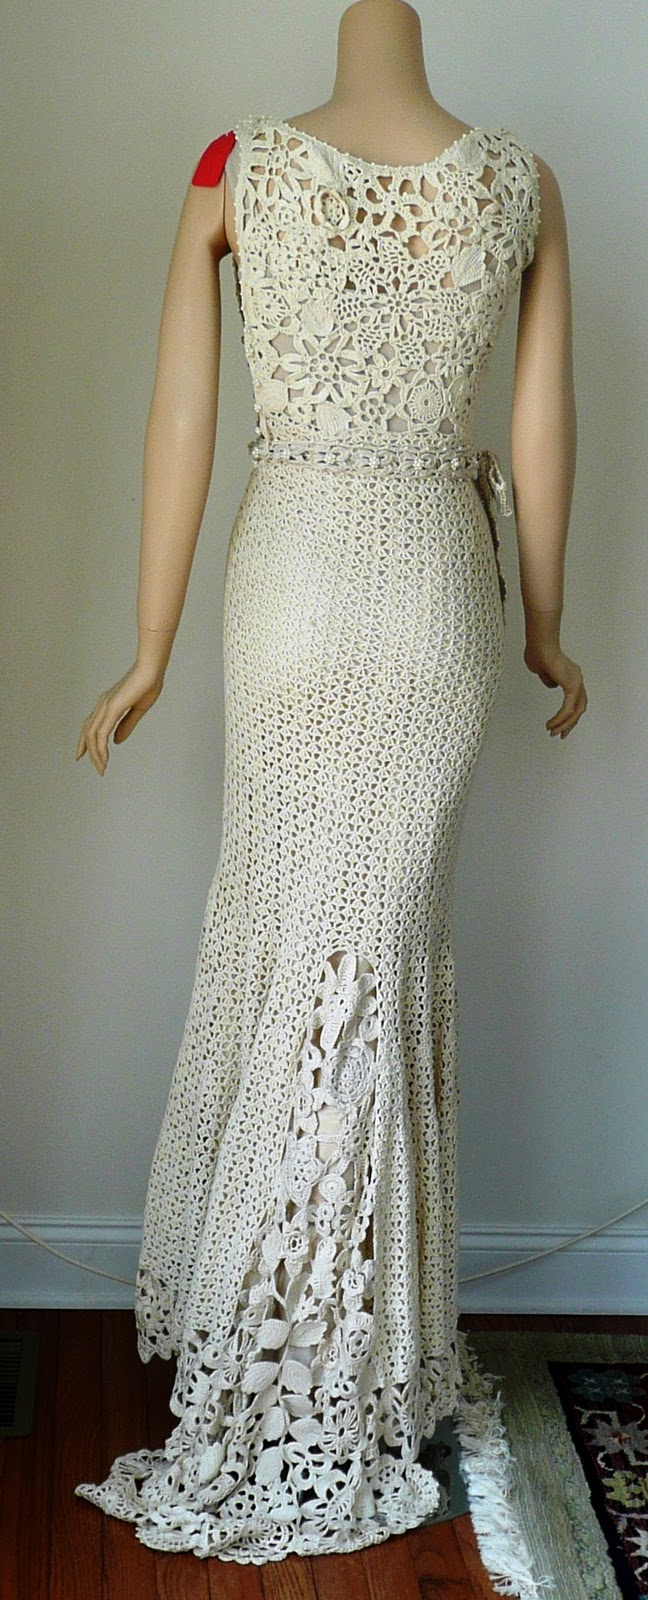 design competition winners 09 crochet wedding dress pattern CGOA Now